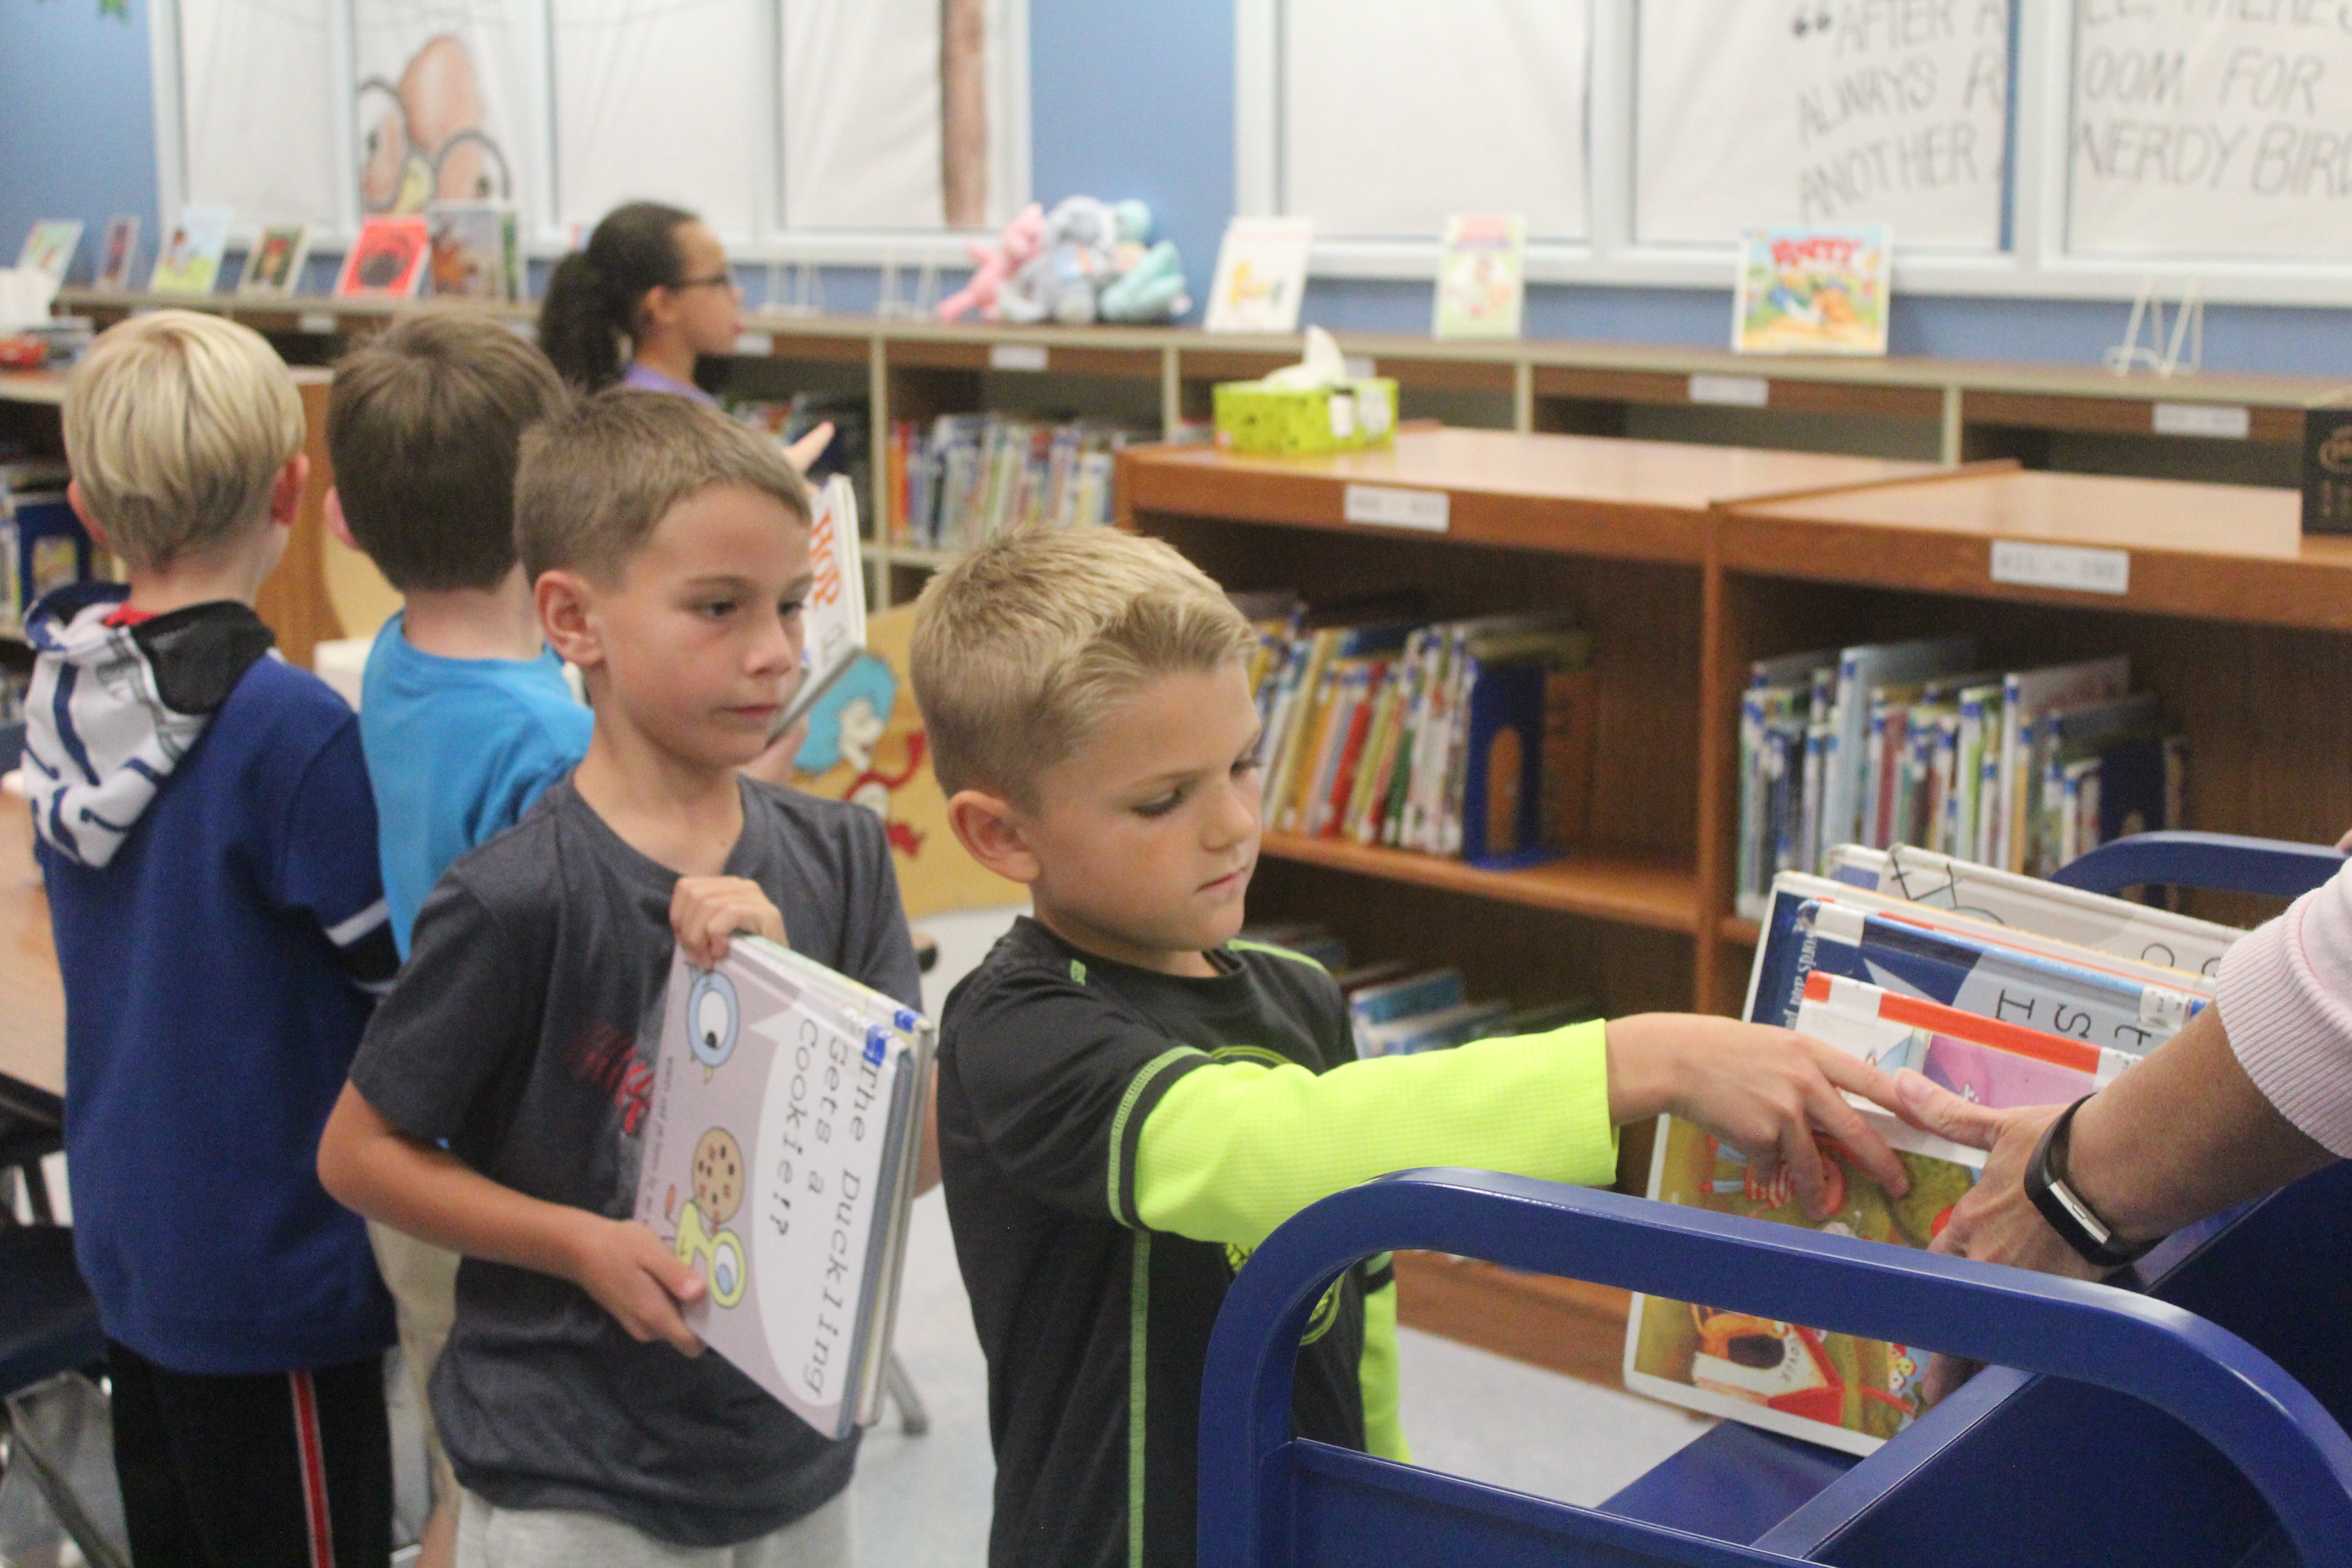 A kid places his library books on the cart to be returned.